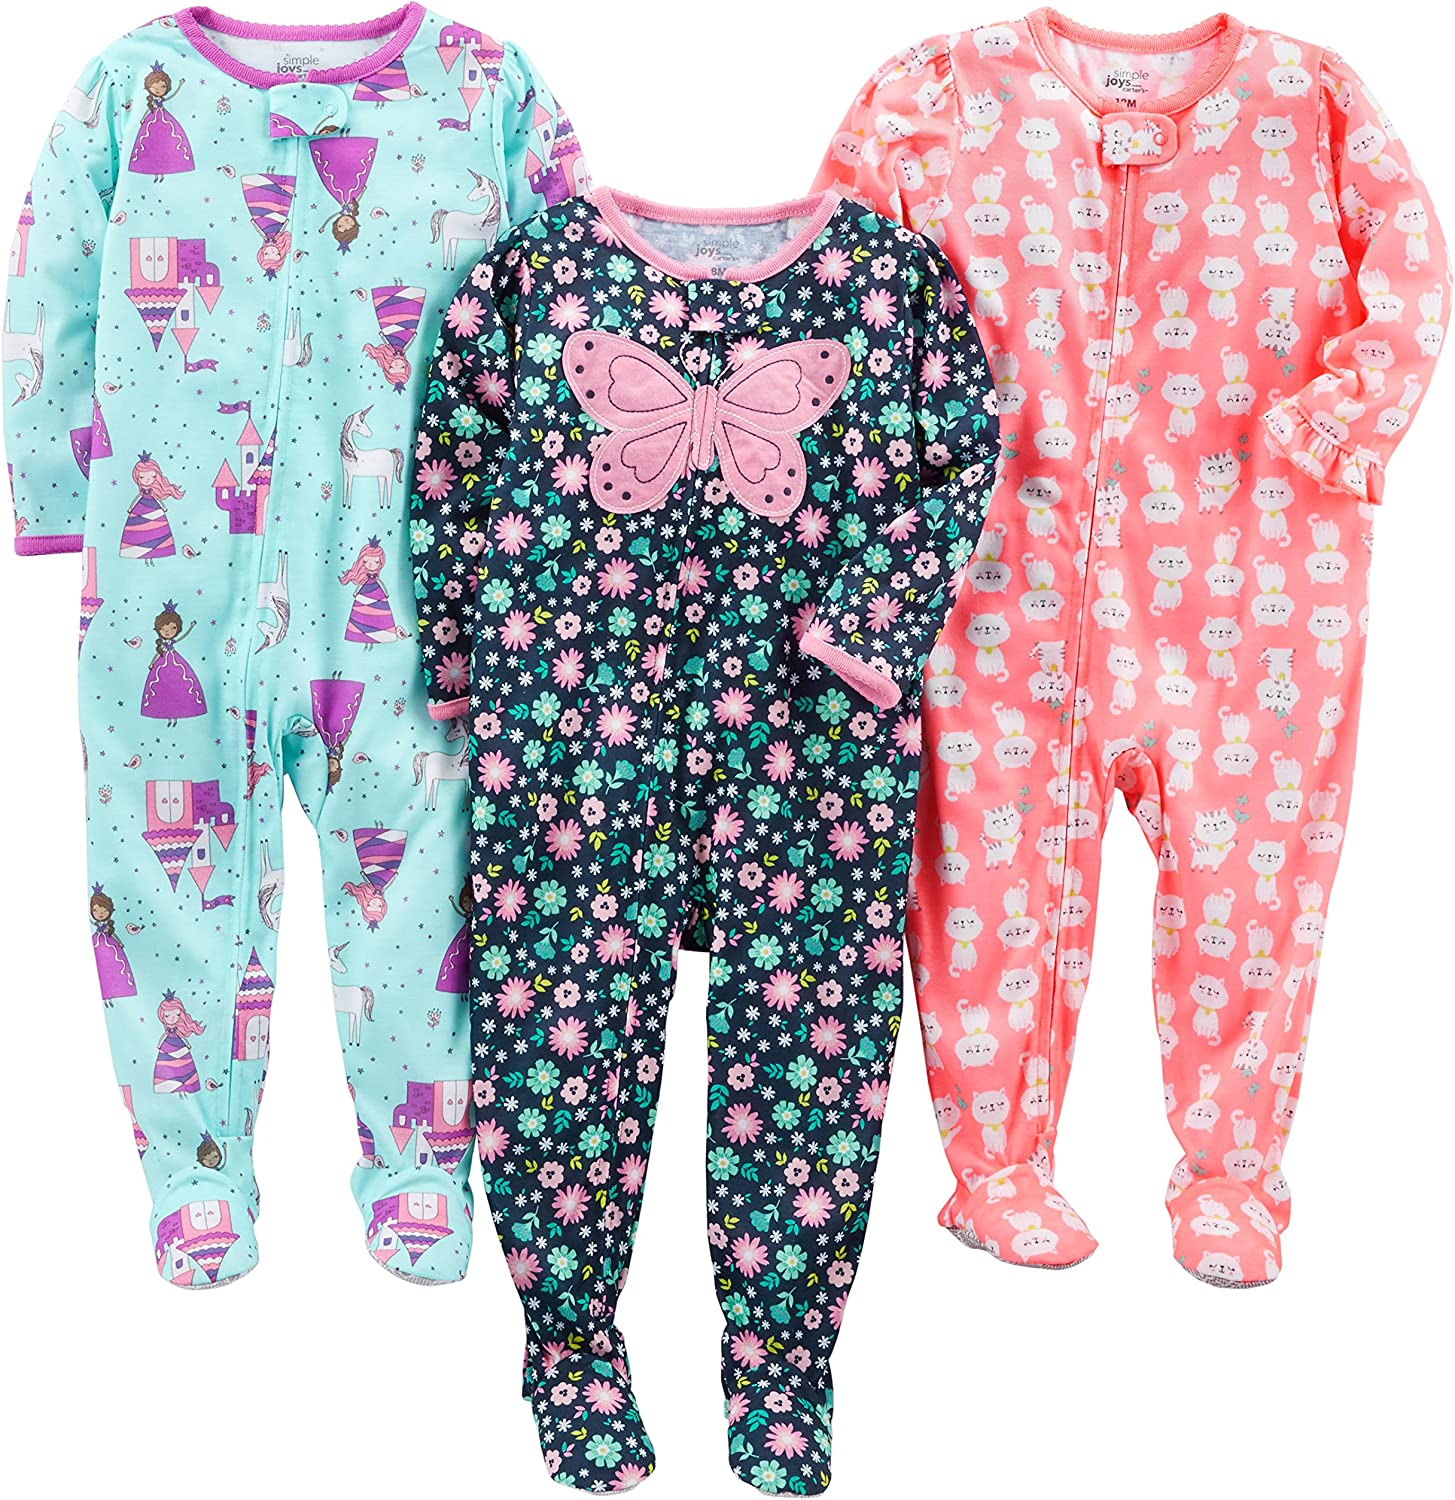 Simple Joys by Carter's Baby and Toddler Girls' 3-Pack Loose Fit Polyester Jersey Footed Pajamas : Clothing, Shoes & Jewelry